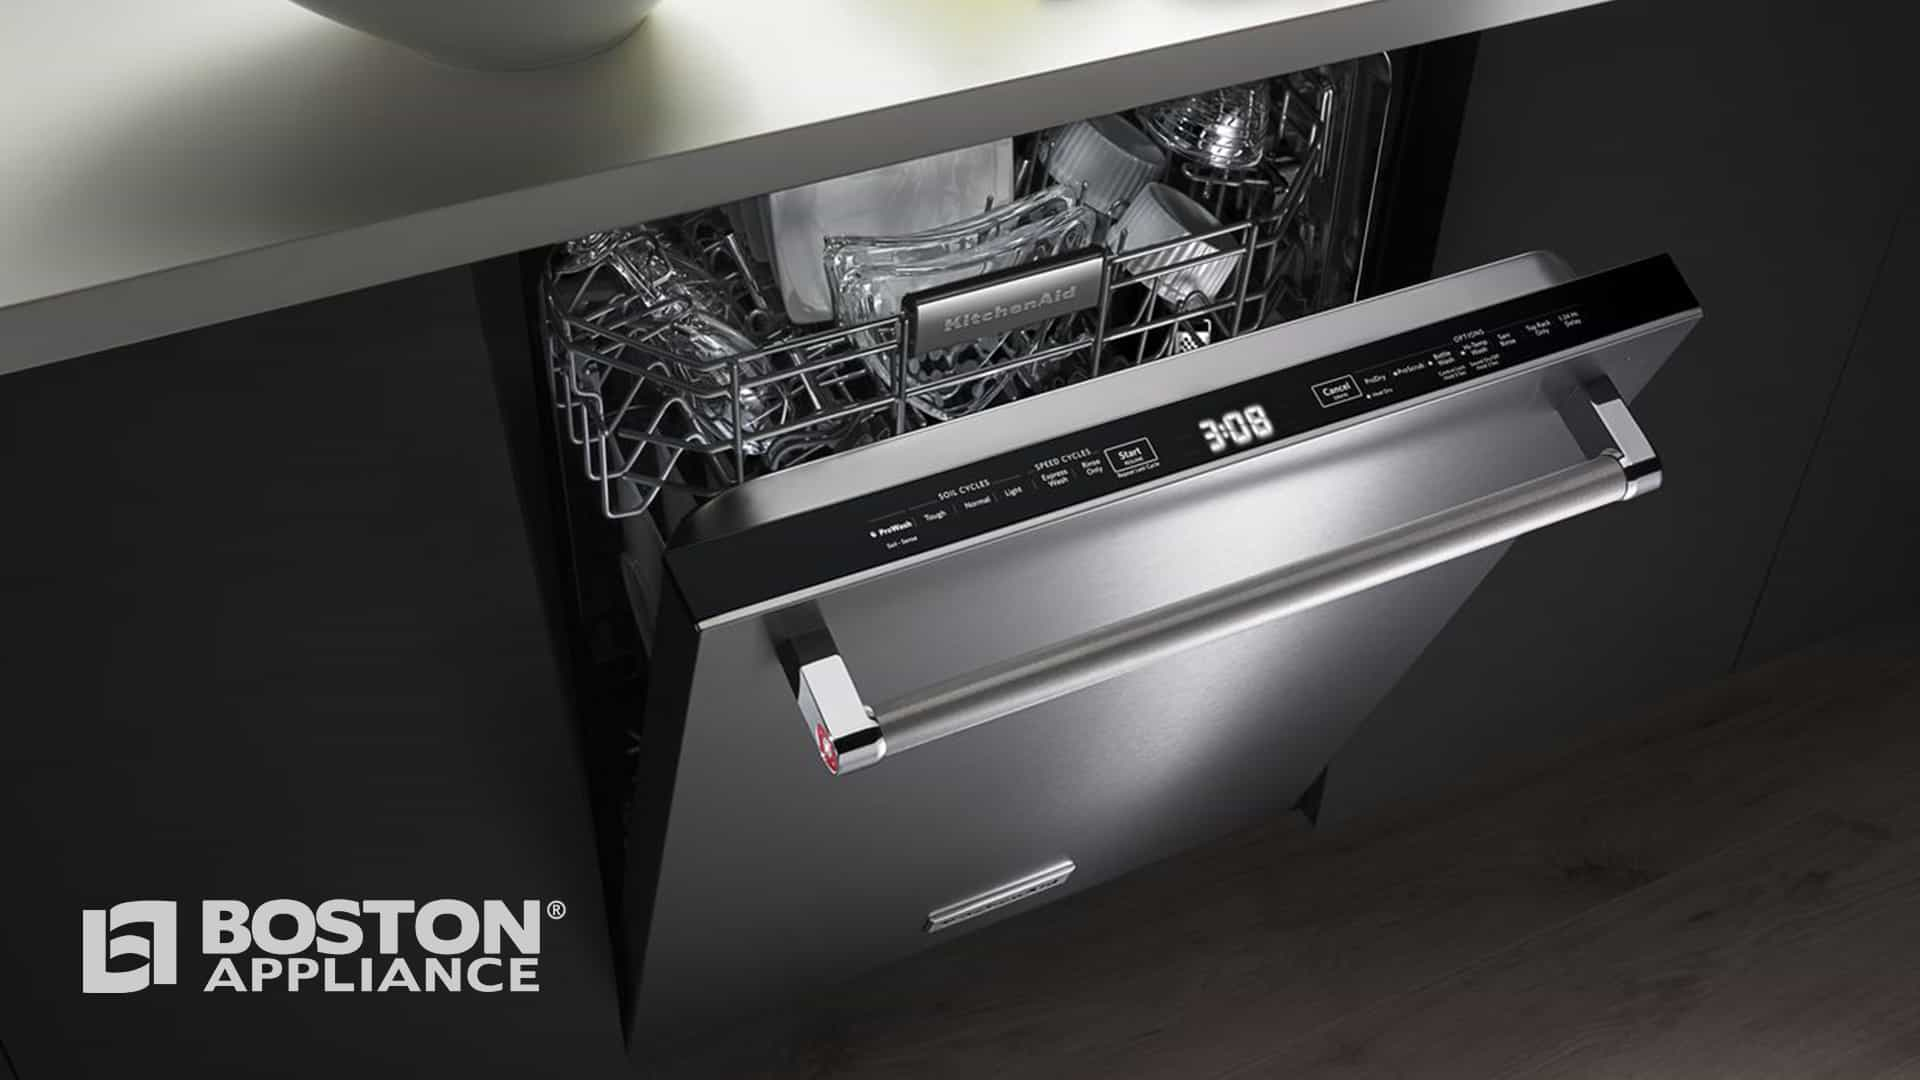 KitchenAid Built-In Dishwasher KDTM704ESS - Boston Appliance